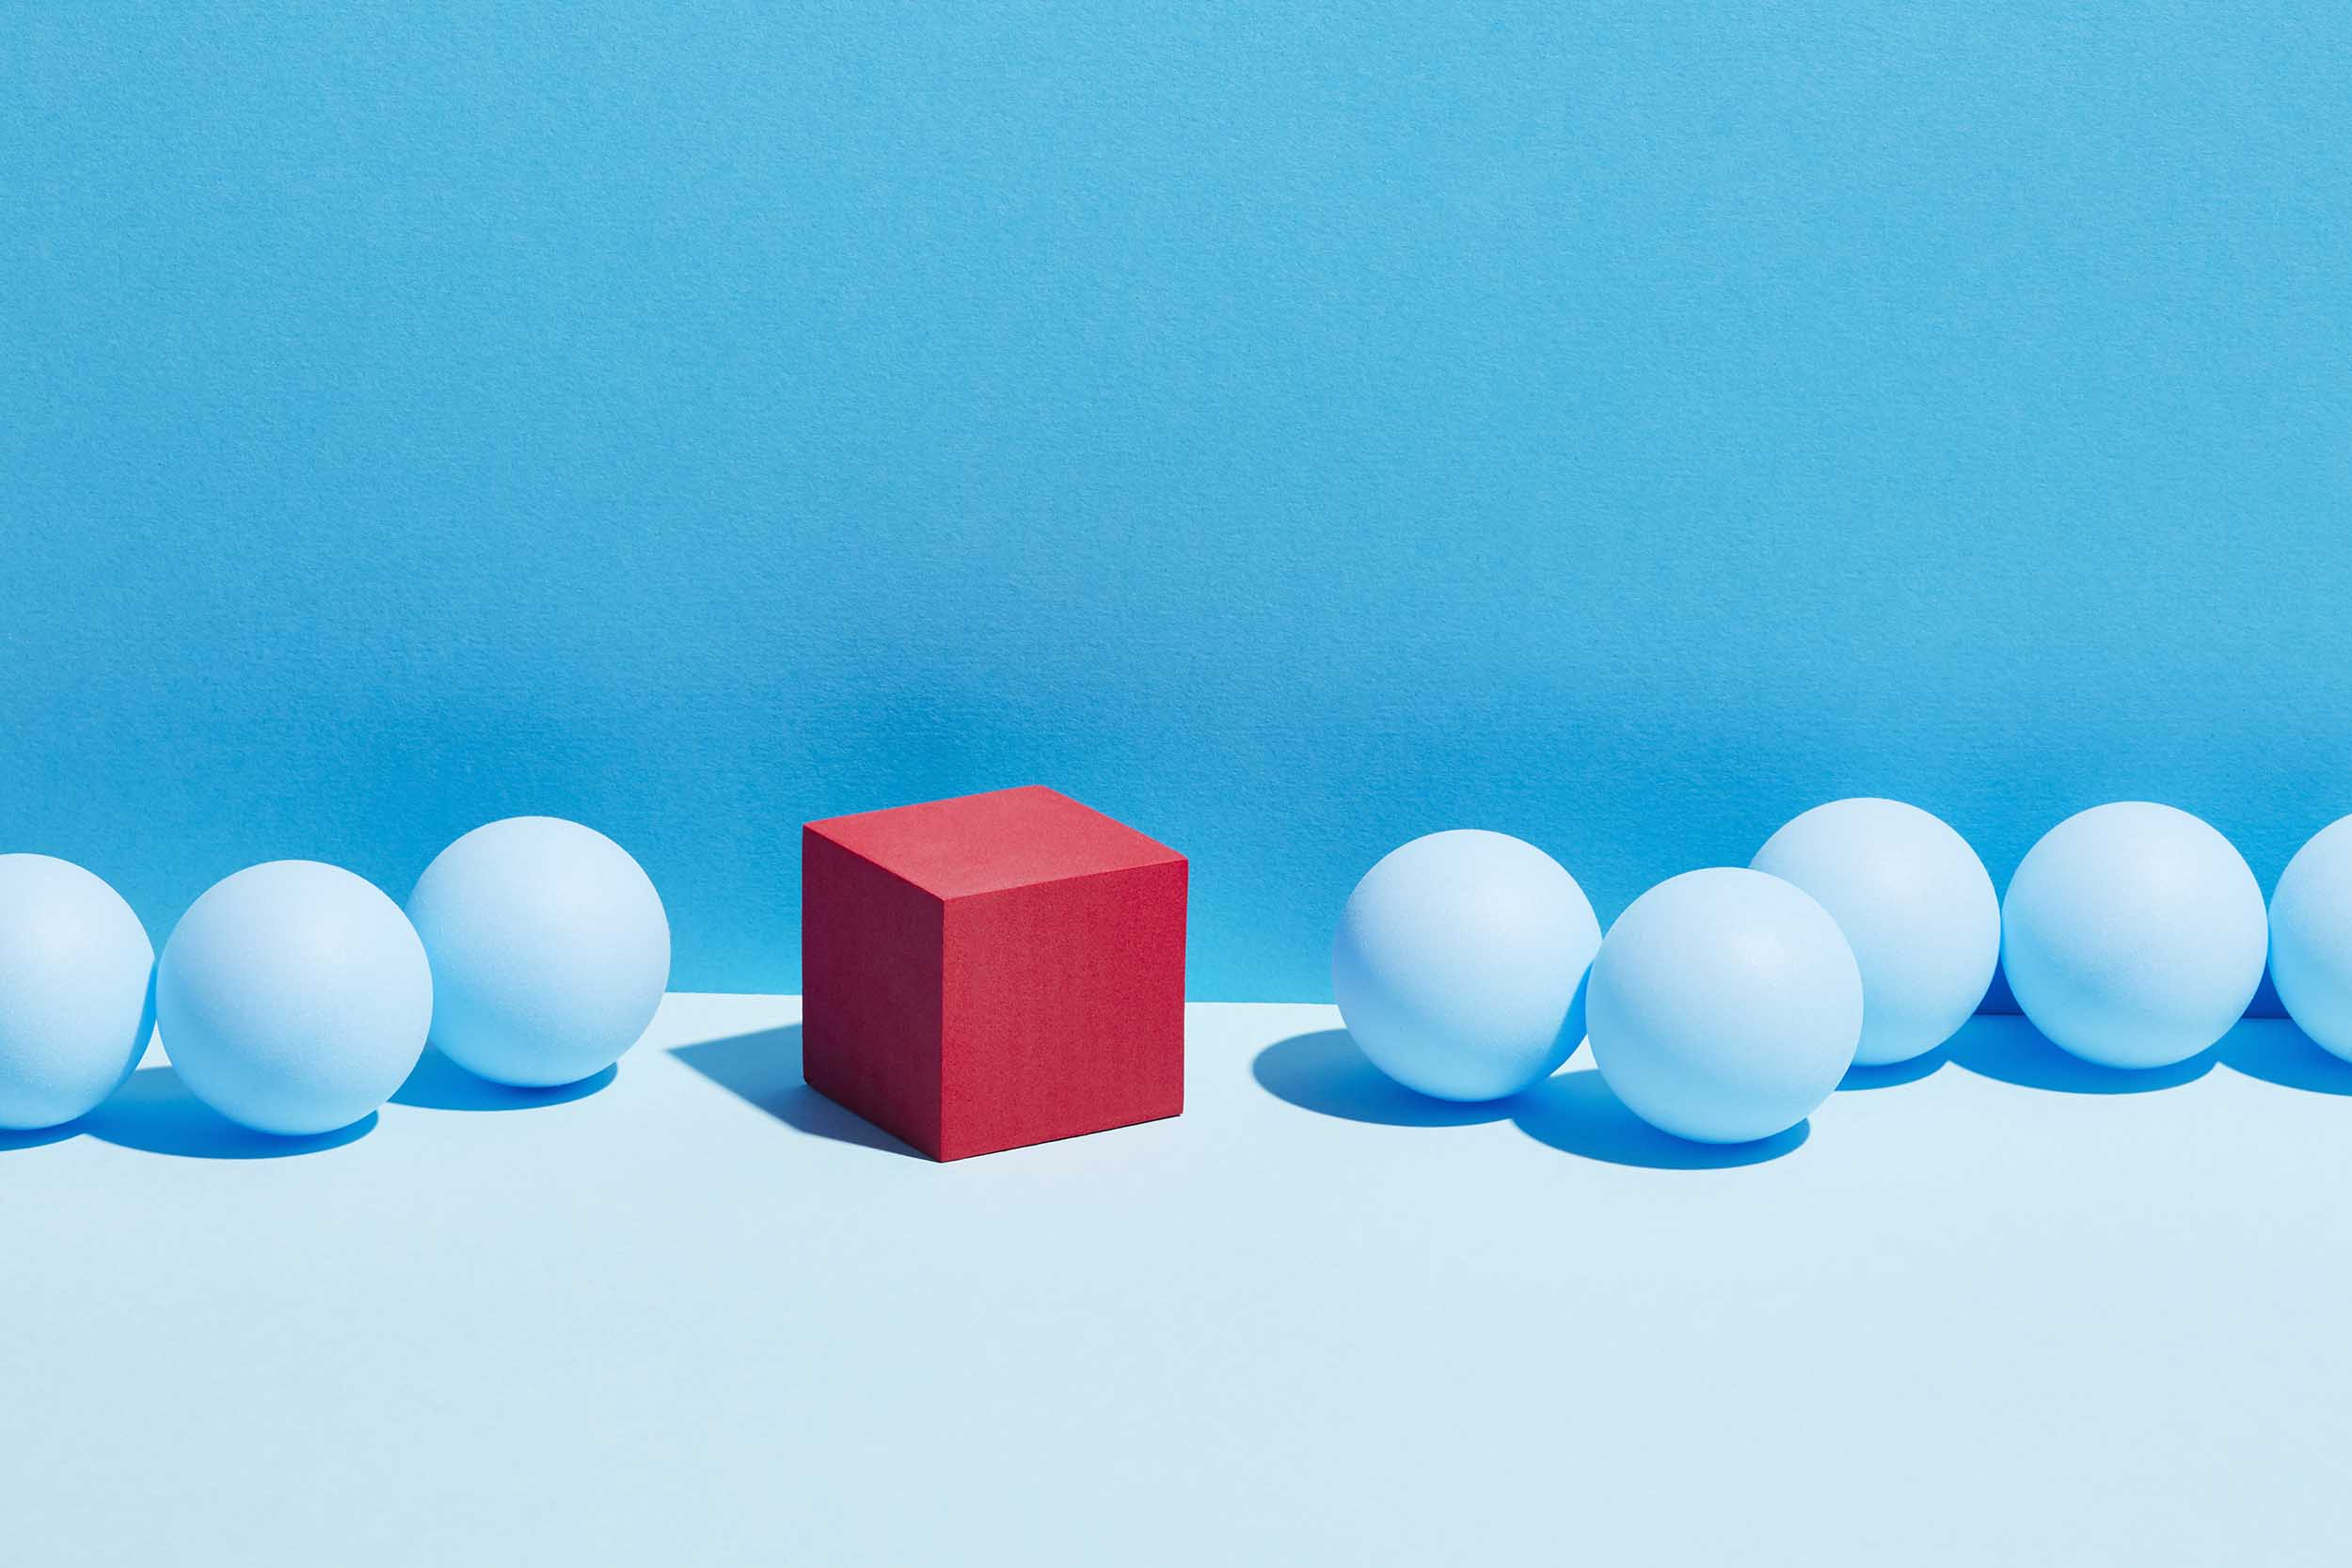 A red cube stands in a row of blue spheres